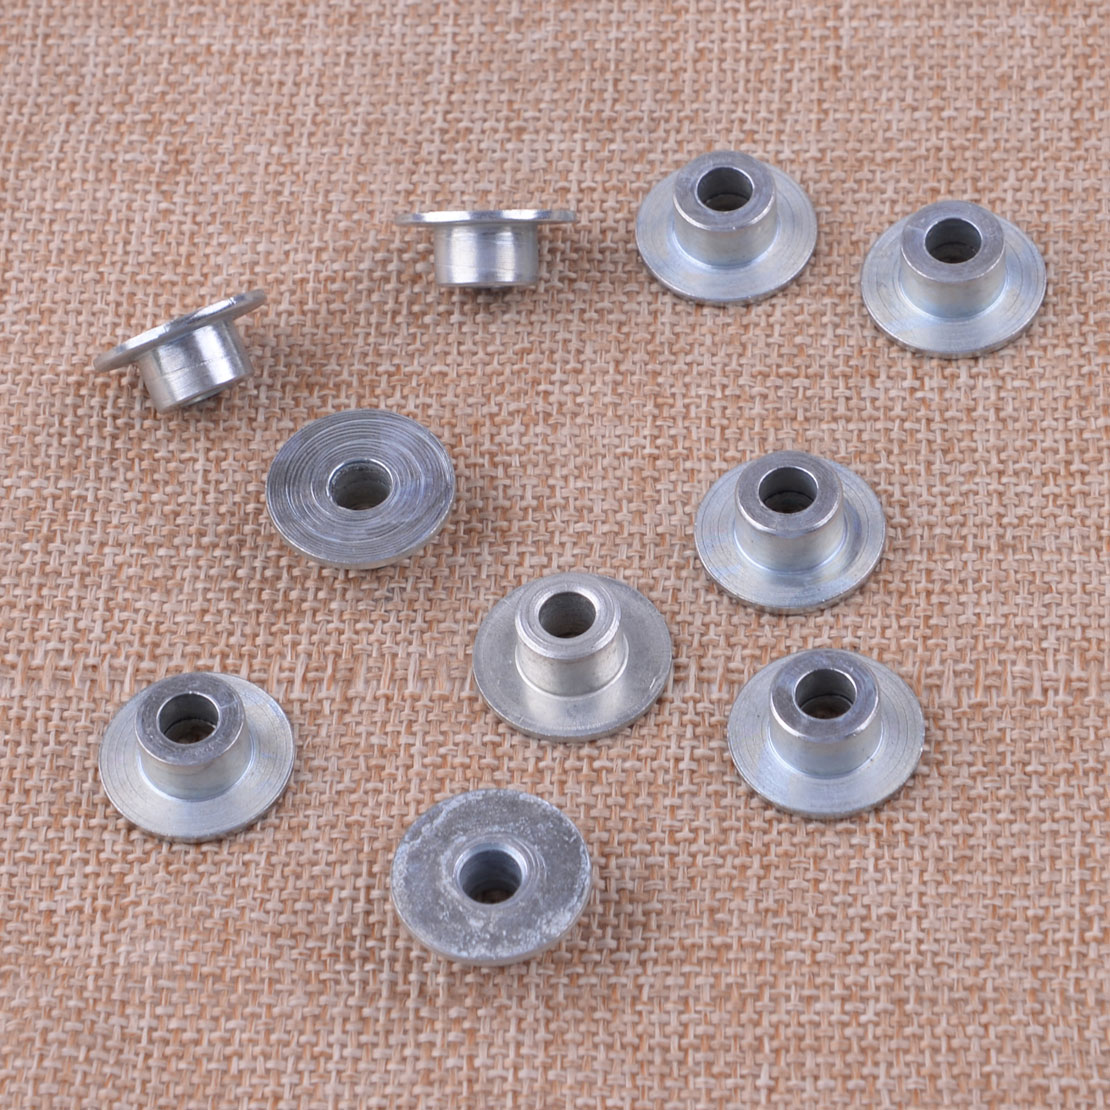 LETAOSK 10pcs Metal Brake Handle Bushing Sleeve Spacer Washer Silver 503775201 Fit For Husqvarna 362 365 371 372 372XP Chainsaws|Tool Parts|Tools - AliExpress